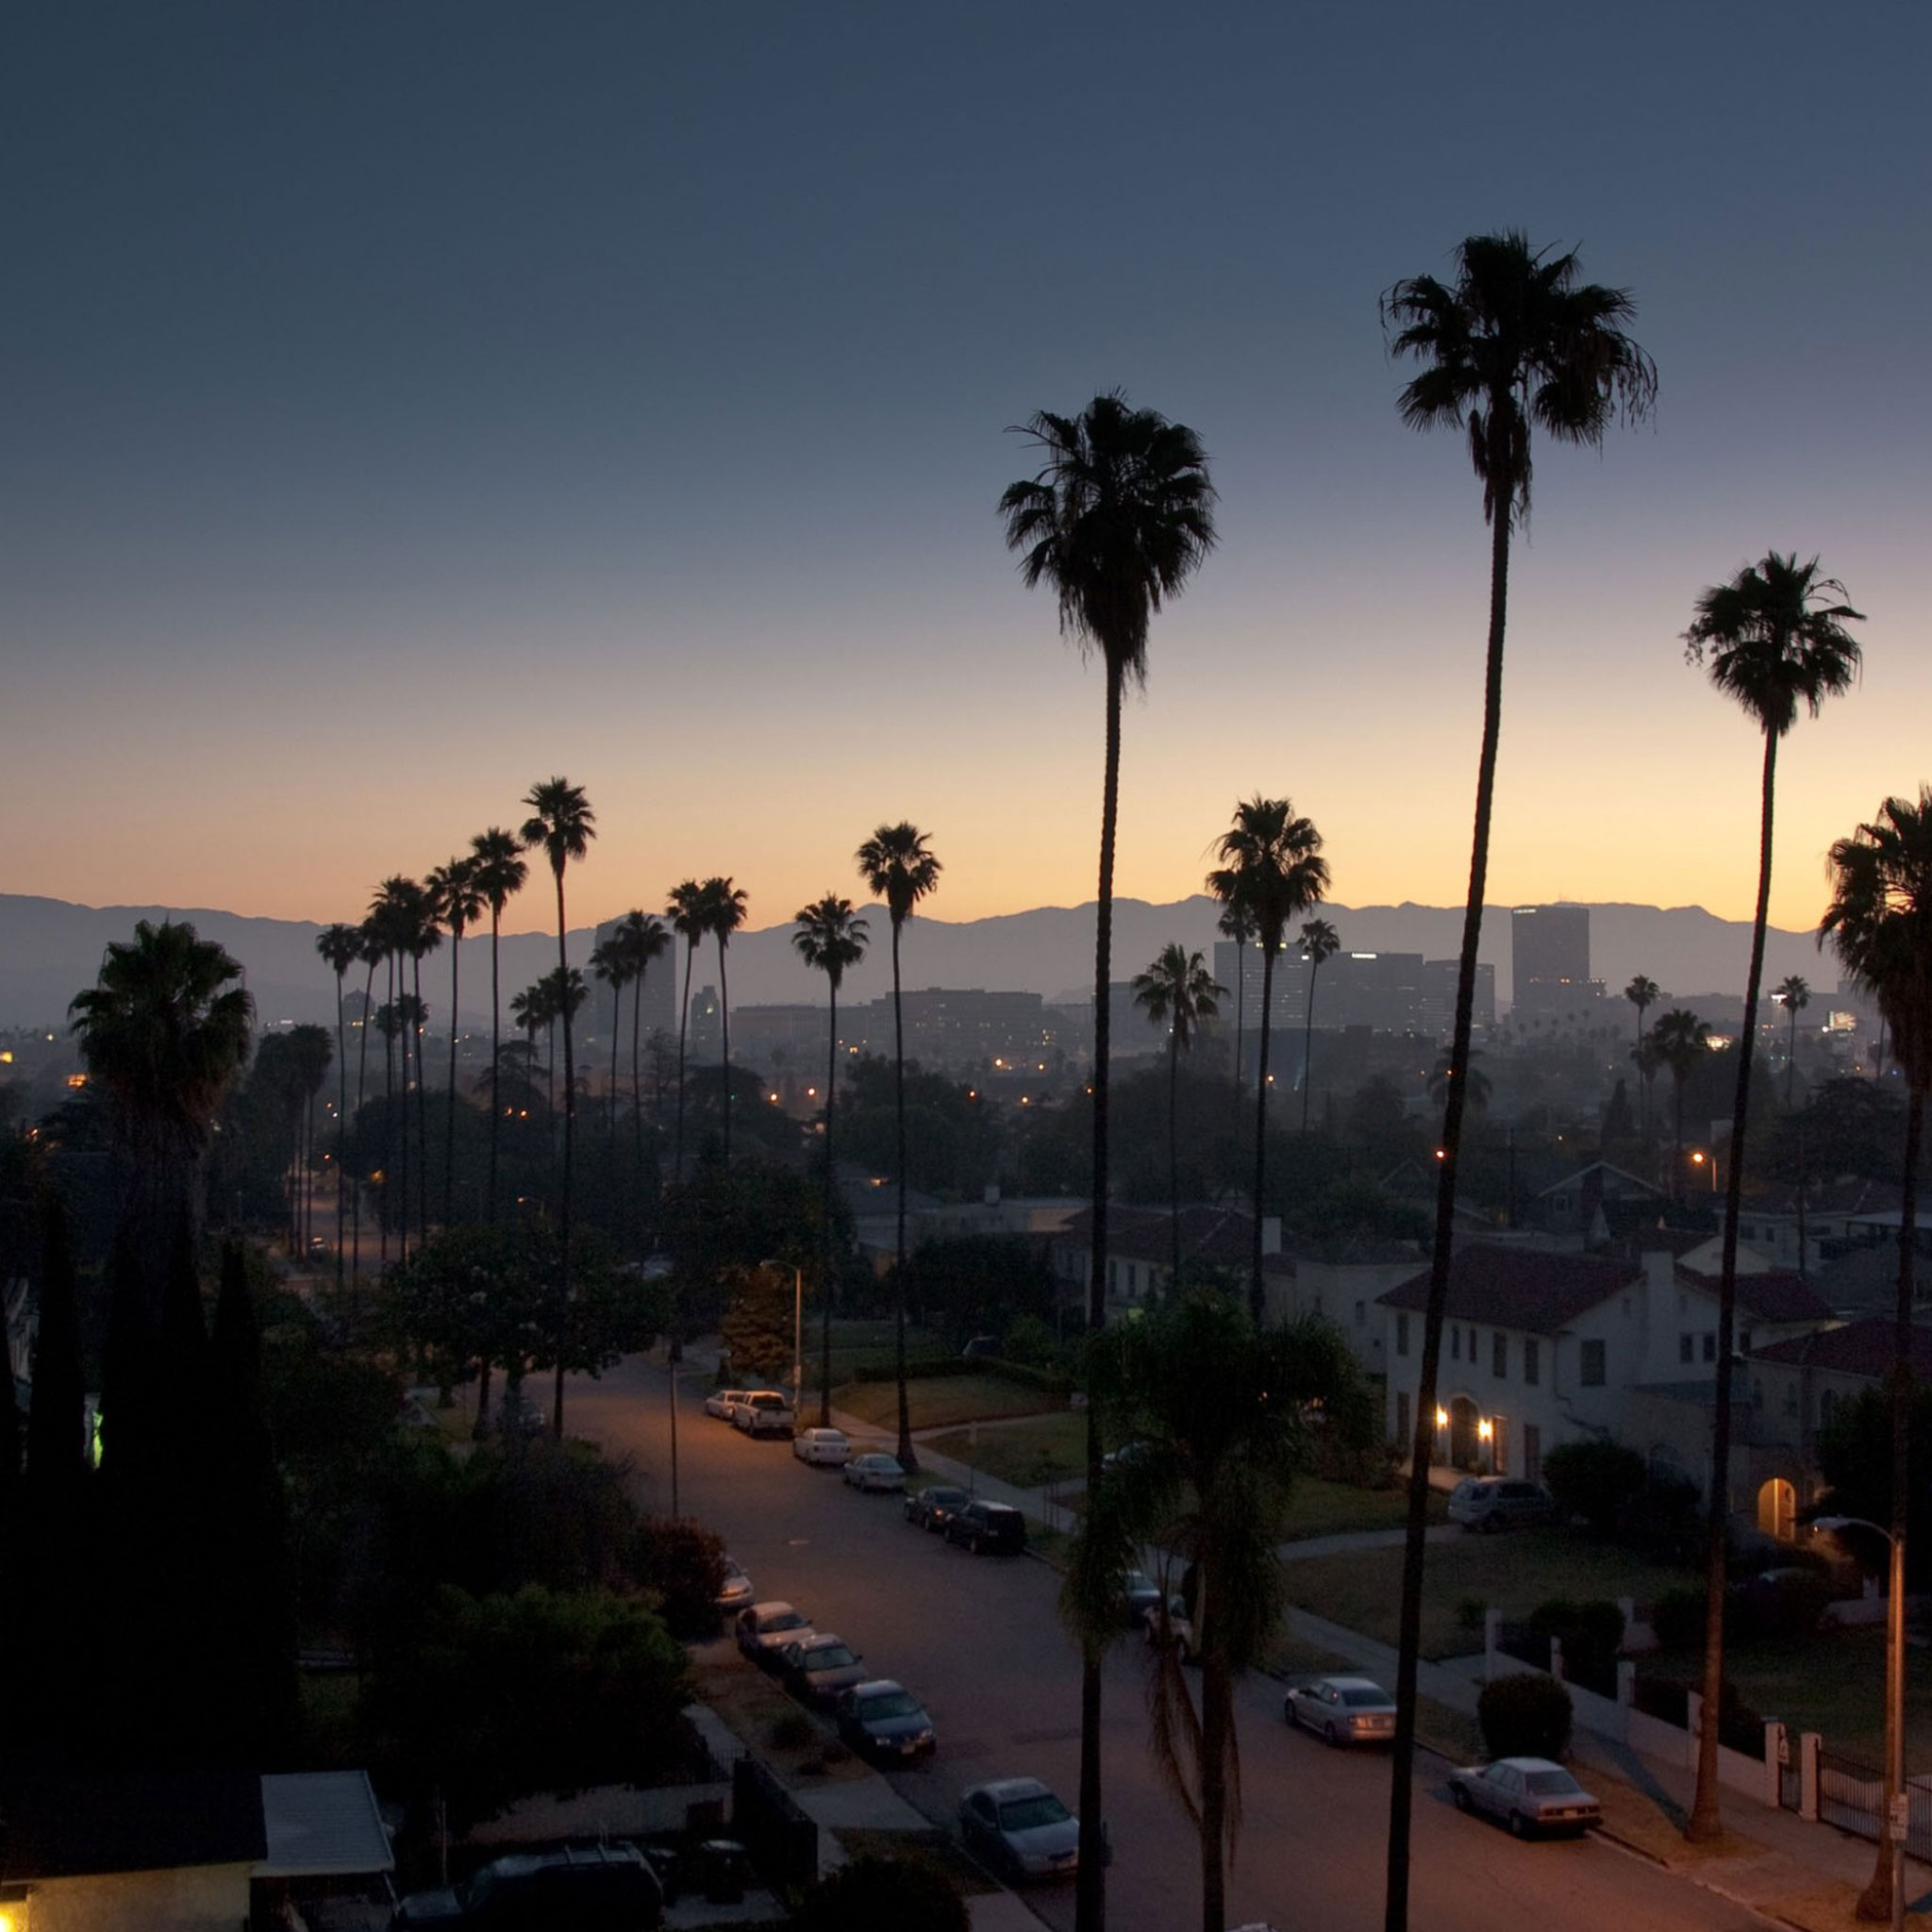 Full Hd Live Wallpaper For Laptop 10 Los Angeles Ipad Wallpapers